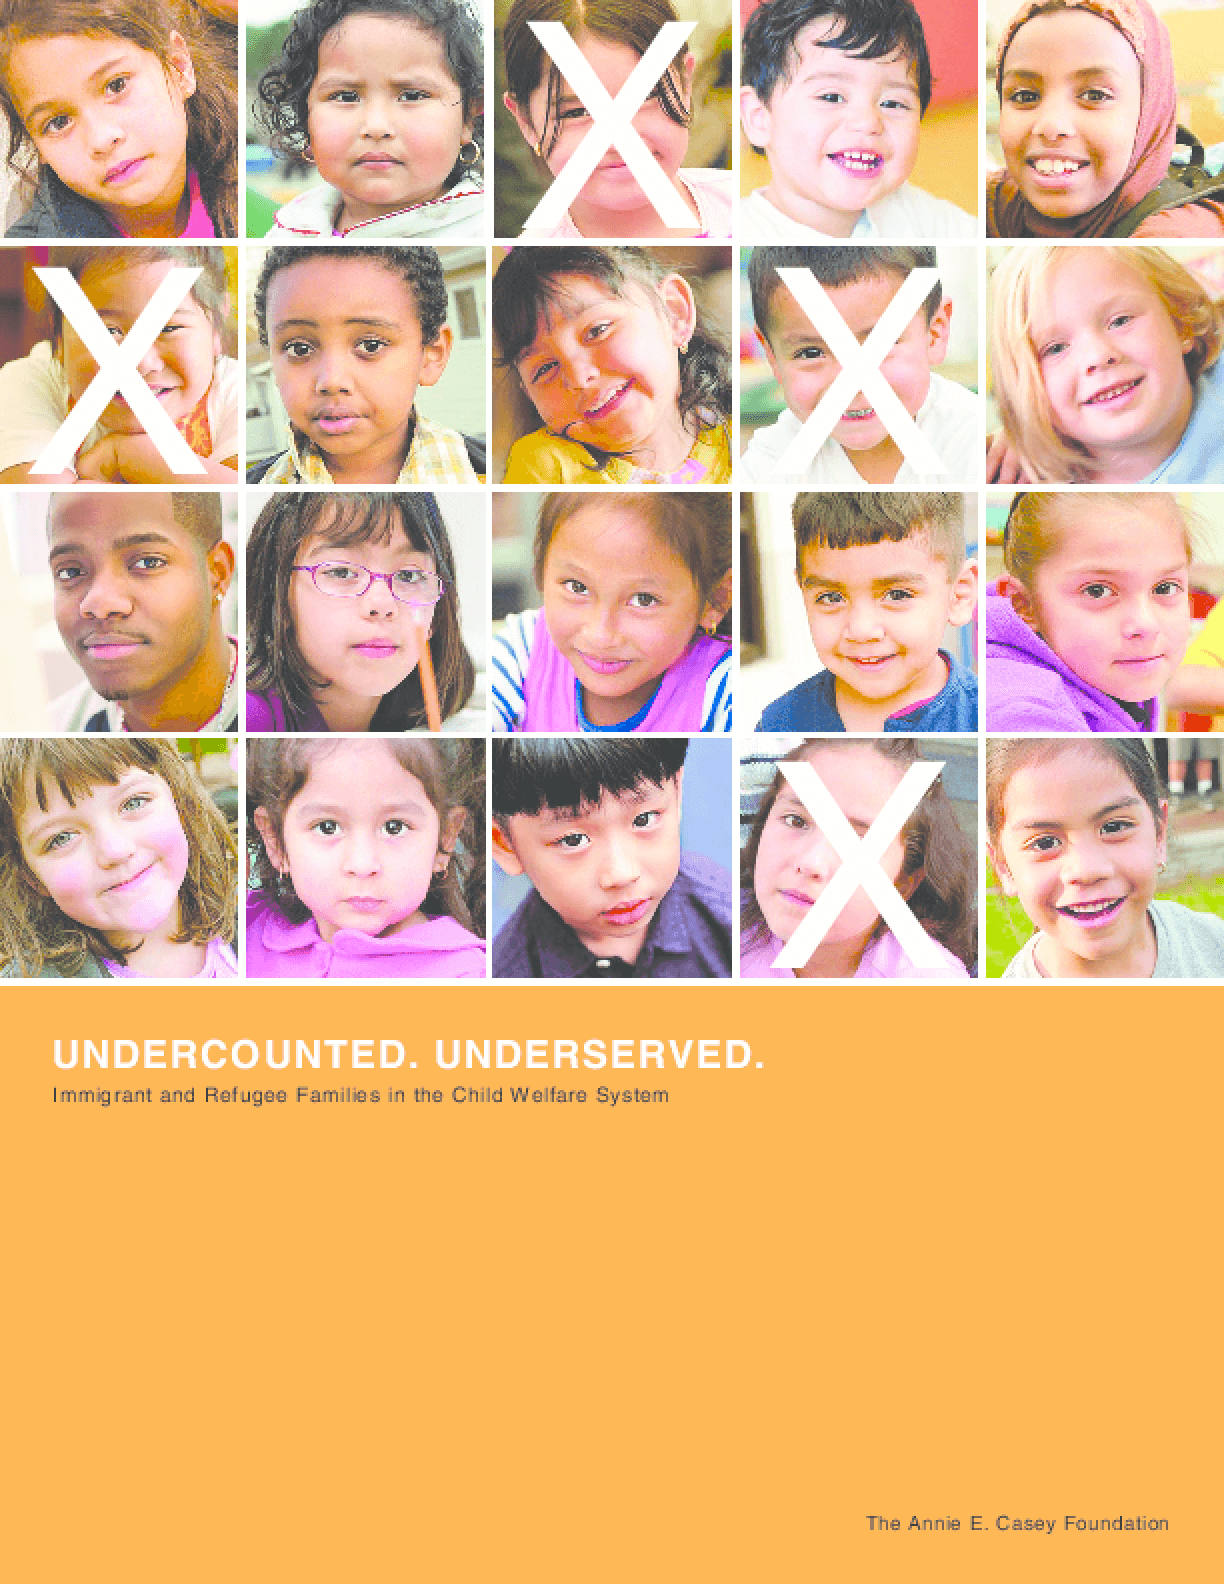 Undercounted, Underserved: Immigrant and Refugee Families in the Child Welfare System